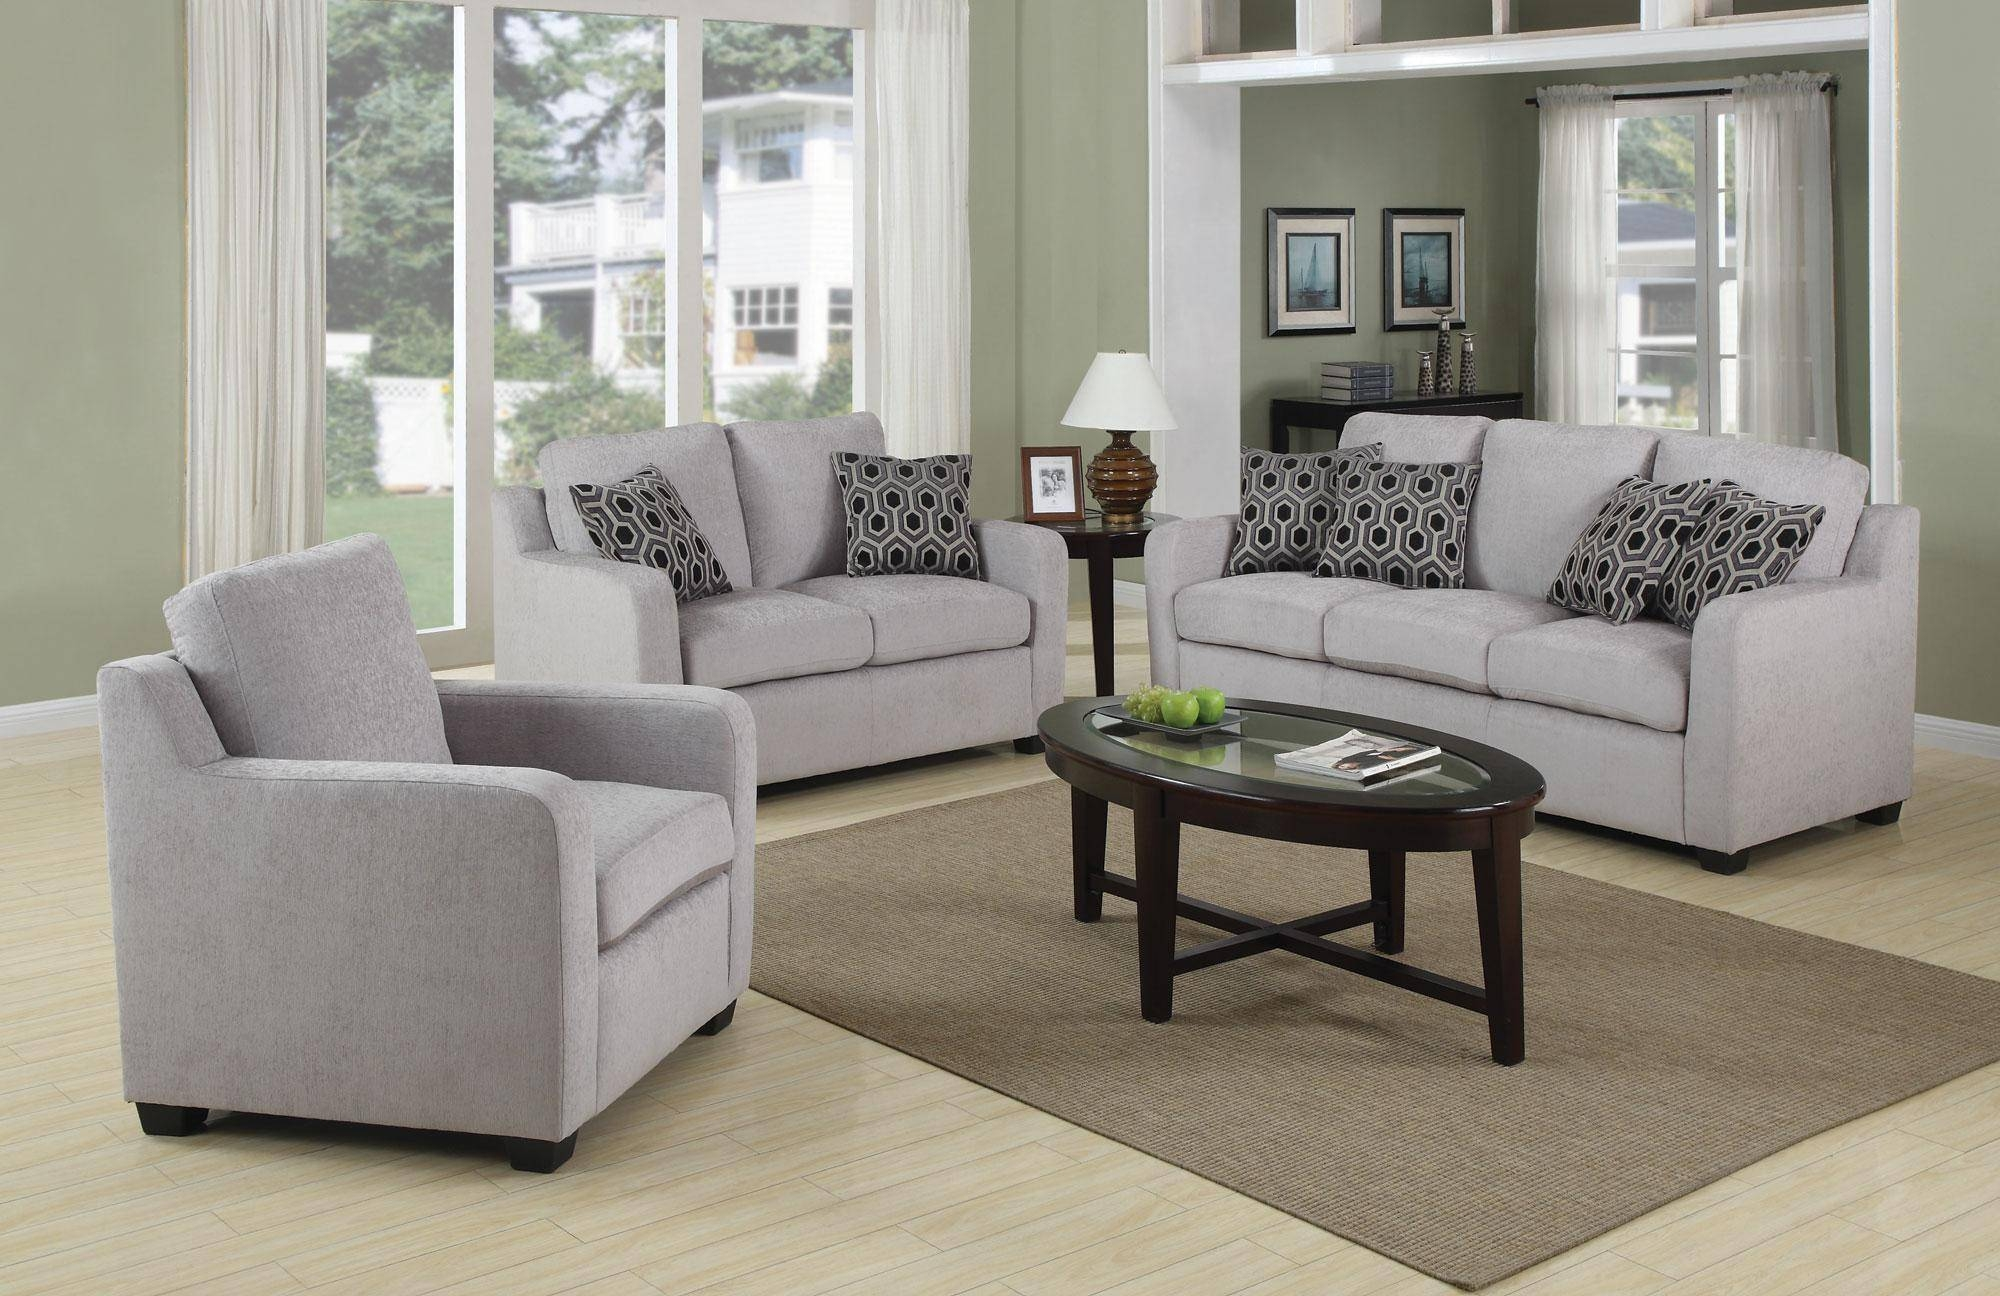 Sofas Center : 38 Shocking Gray Sofa Set Images Inspirations Gray with regard to Blue Gray Sofas (Image 15 of 15)